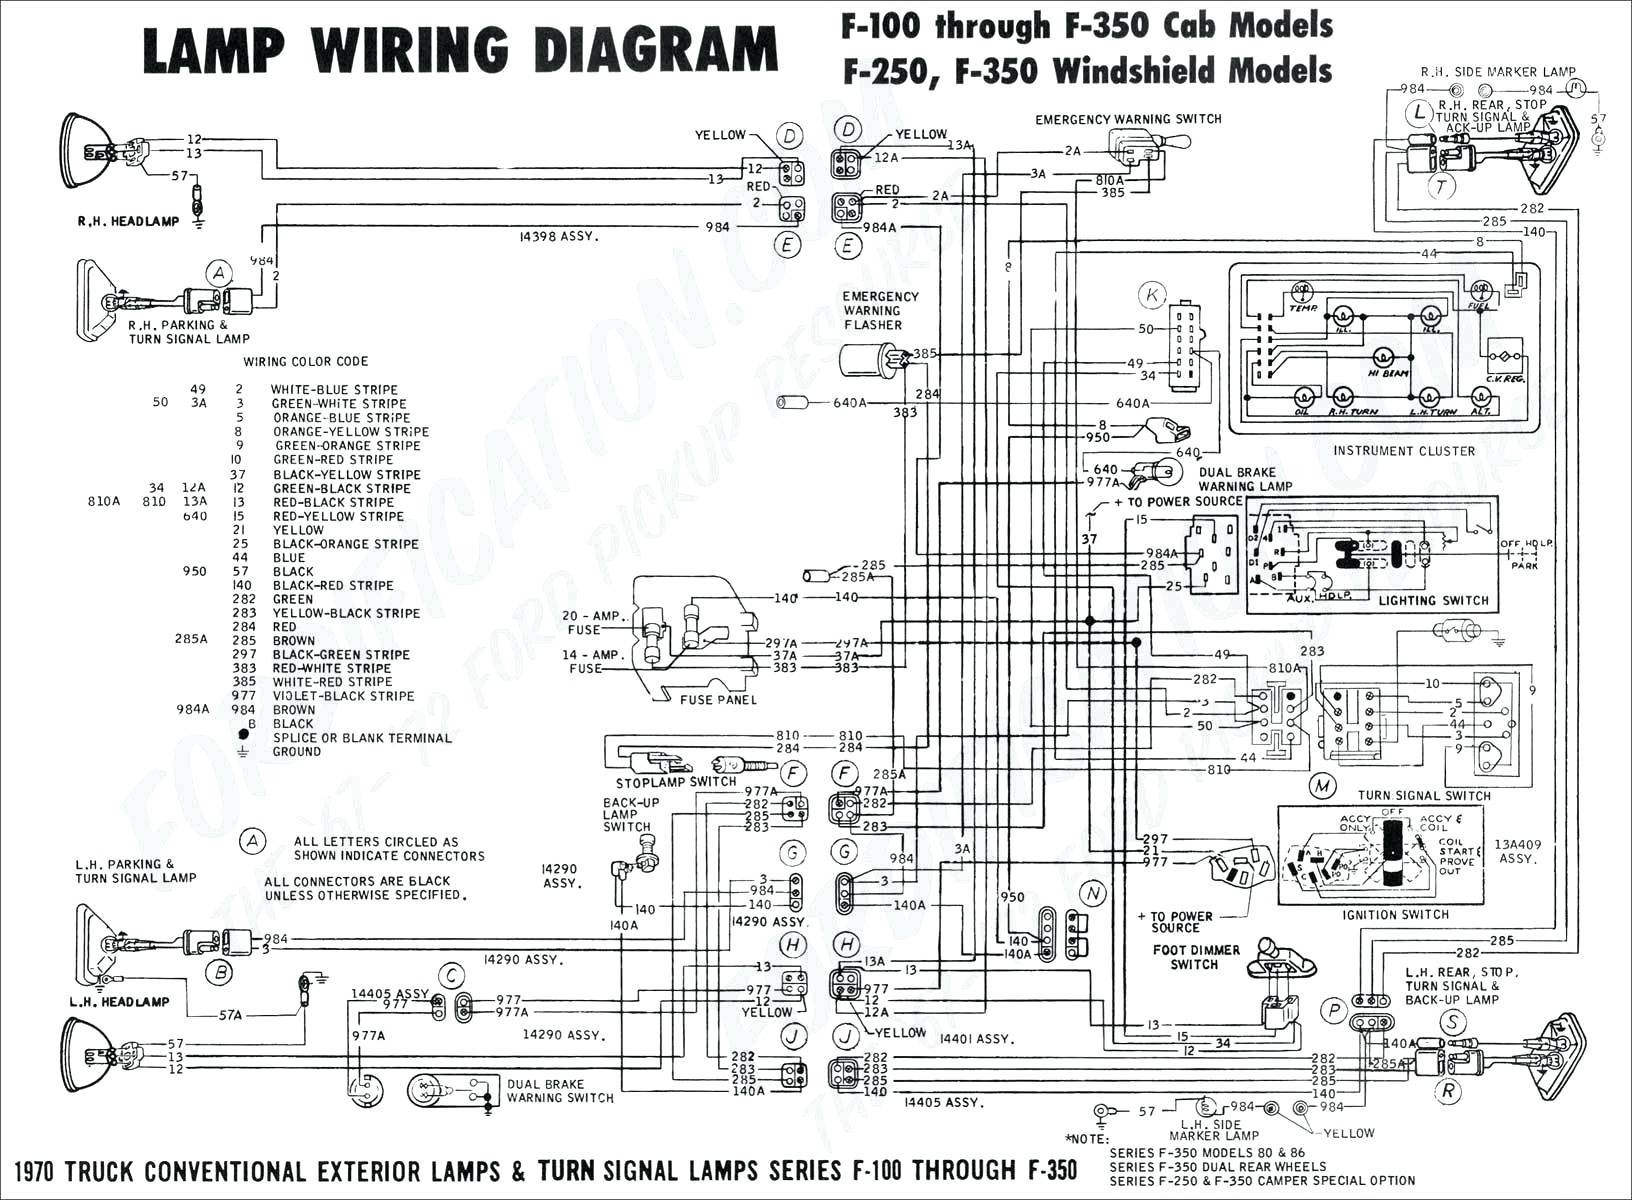 Wiring Diagram for Lze730gka604a3 Lawnmower Riding Lawn Mower Starter solenoid Wiring Diagram Of Wiring Diagram for Lze730gka604a3 Lawnmower